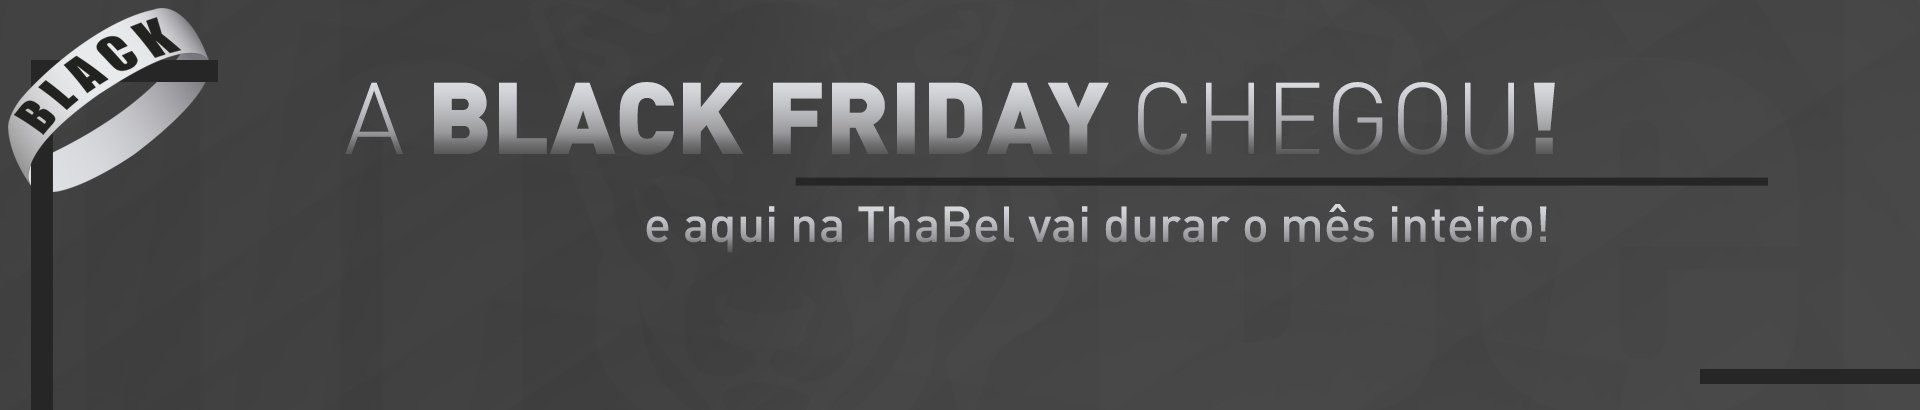 A Black Friday chegou!